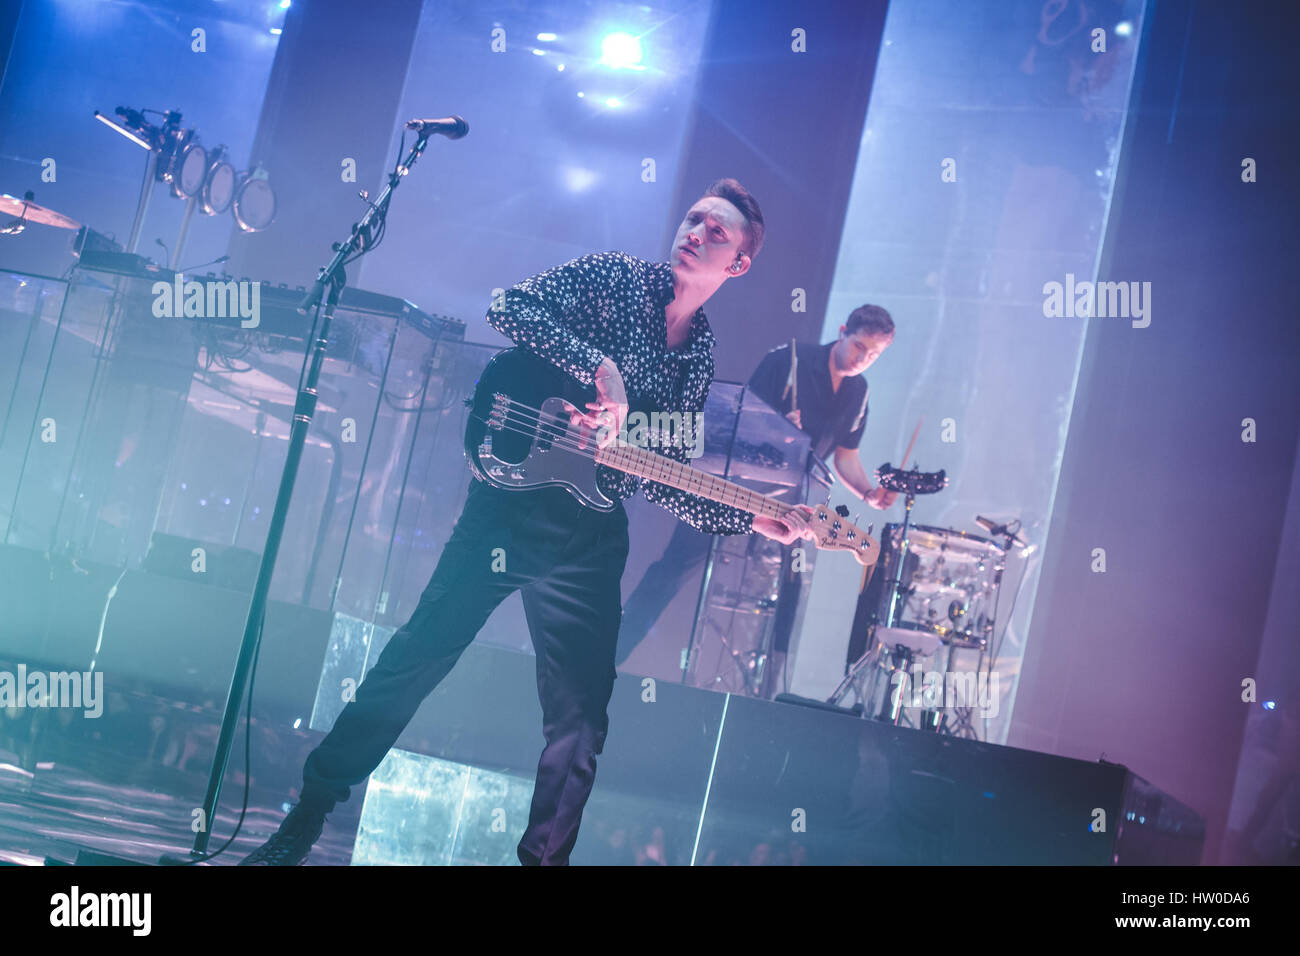 London, UK. March 15, 2017 - Oliver Sim, of the British band The XX ...